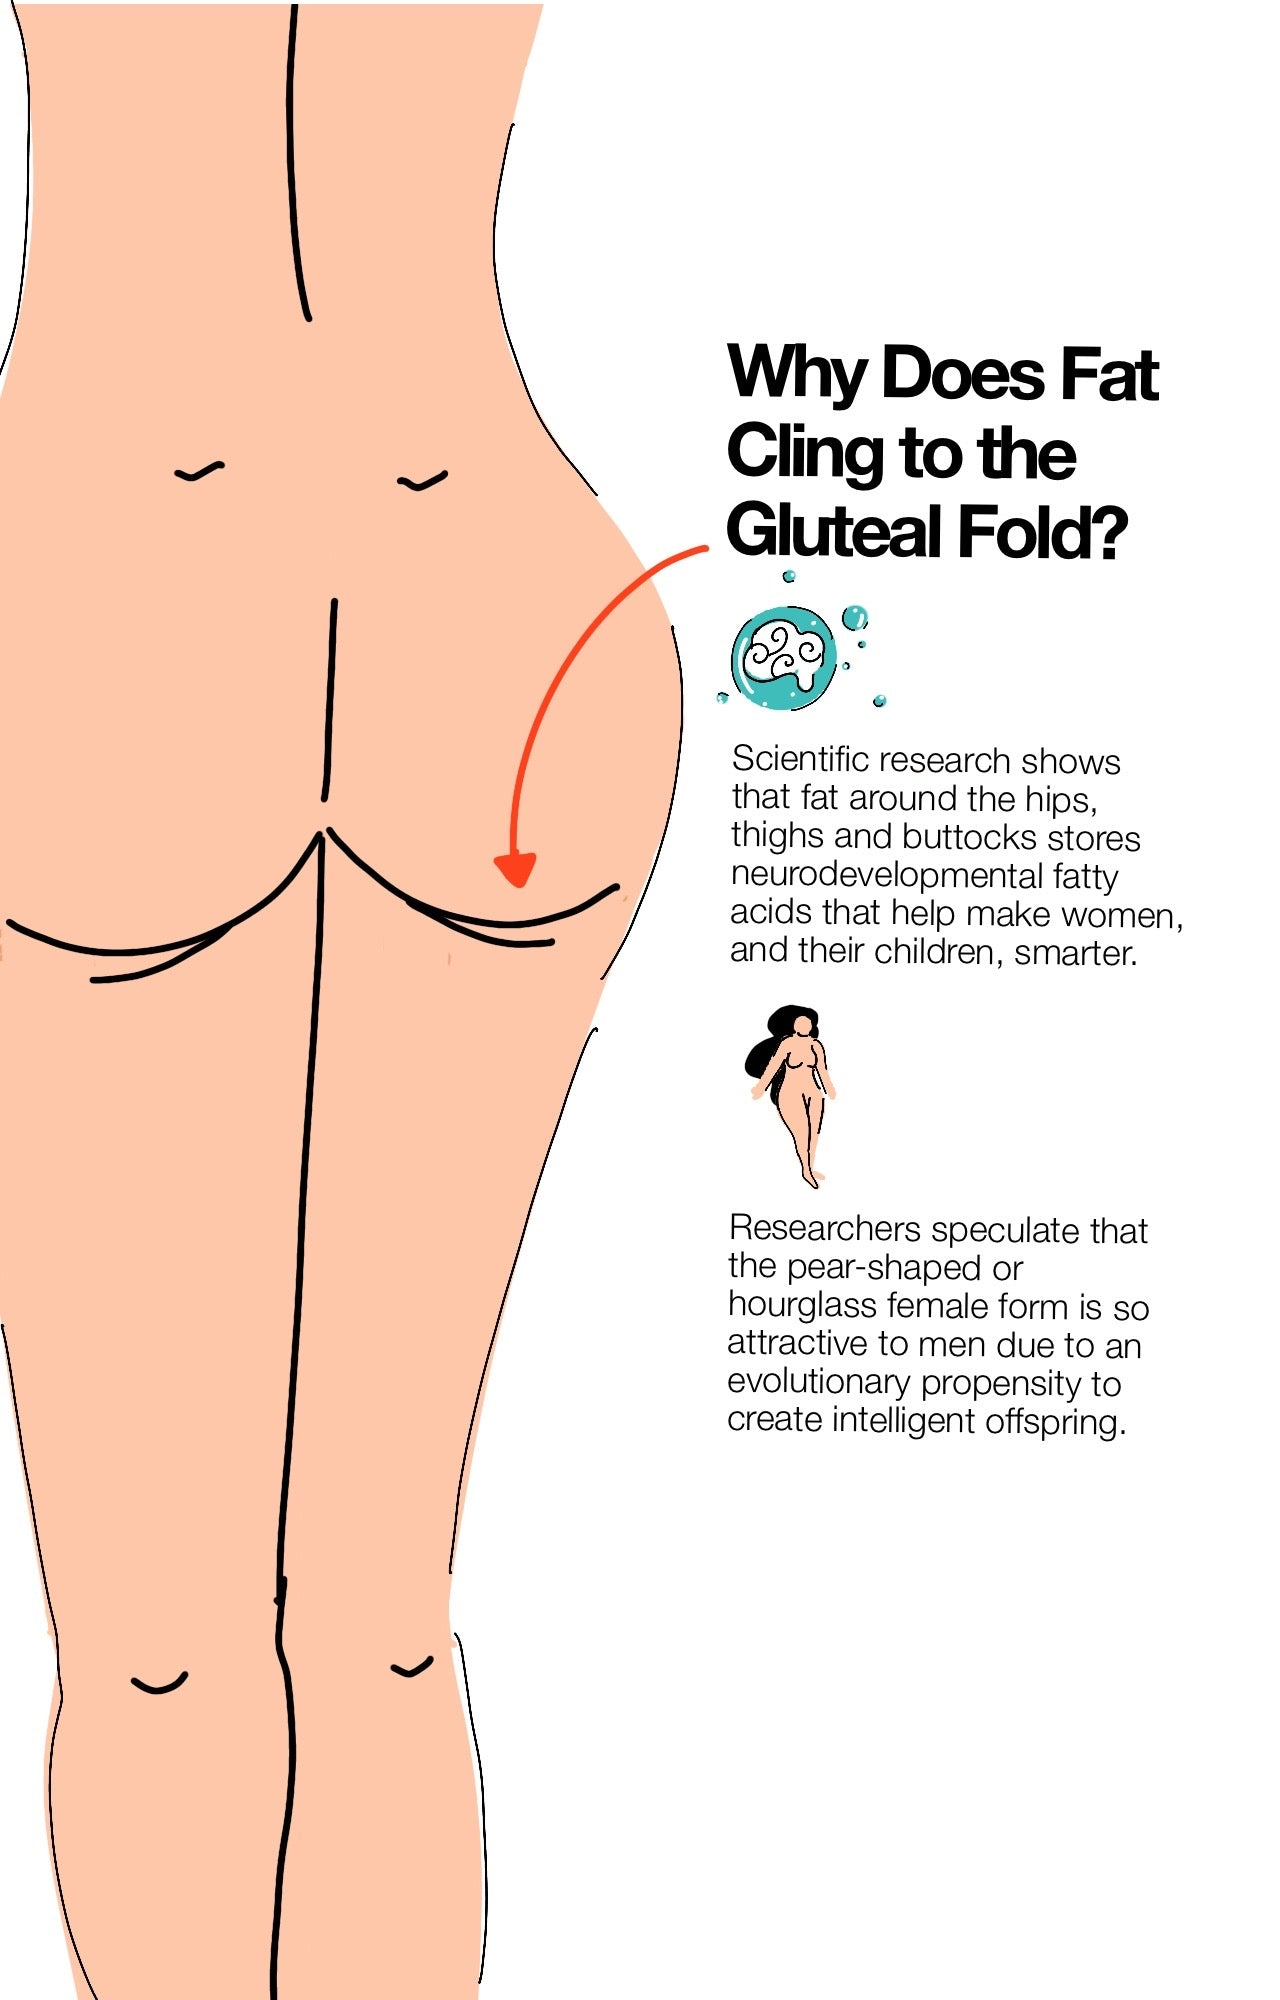 Why Does Fat Cling to the Gluteal Fold?